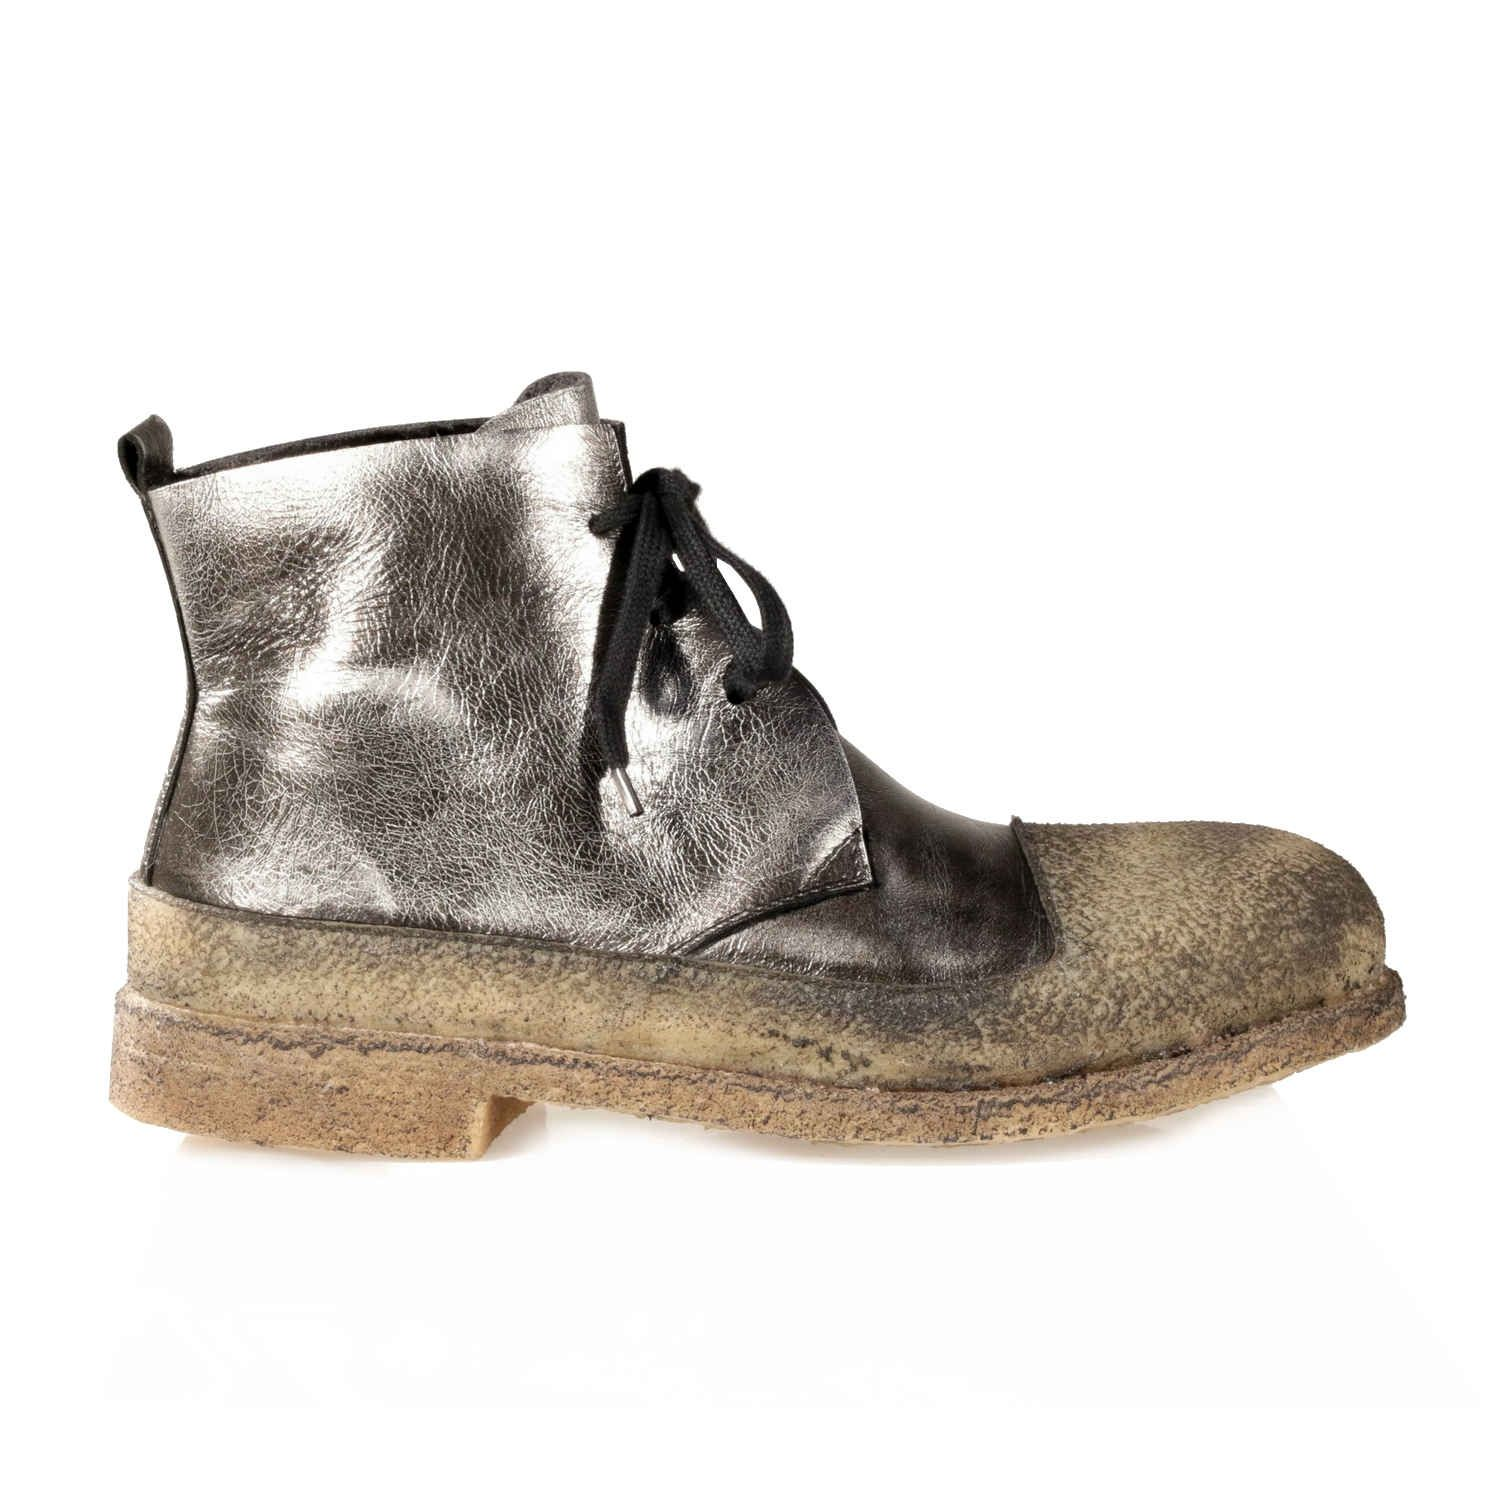 Metallic waterpwoof winter boots with fur lining for women Rocco P FW